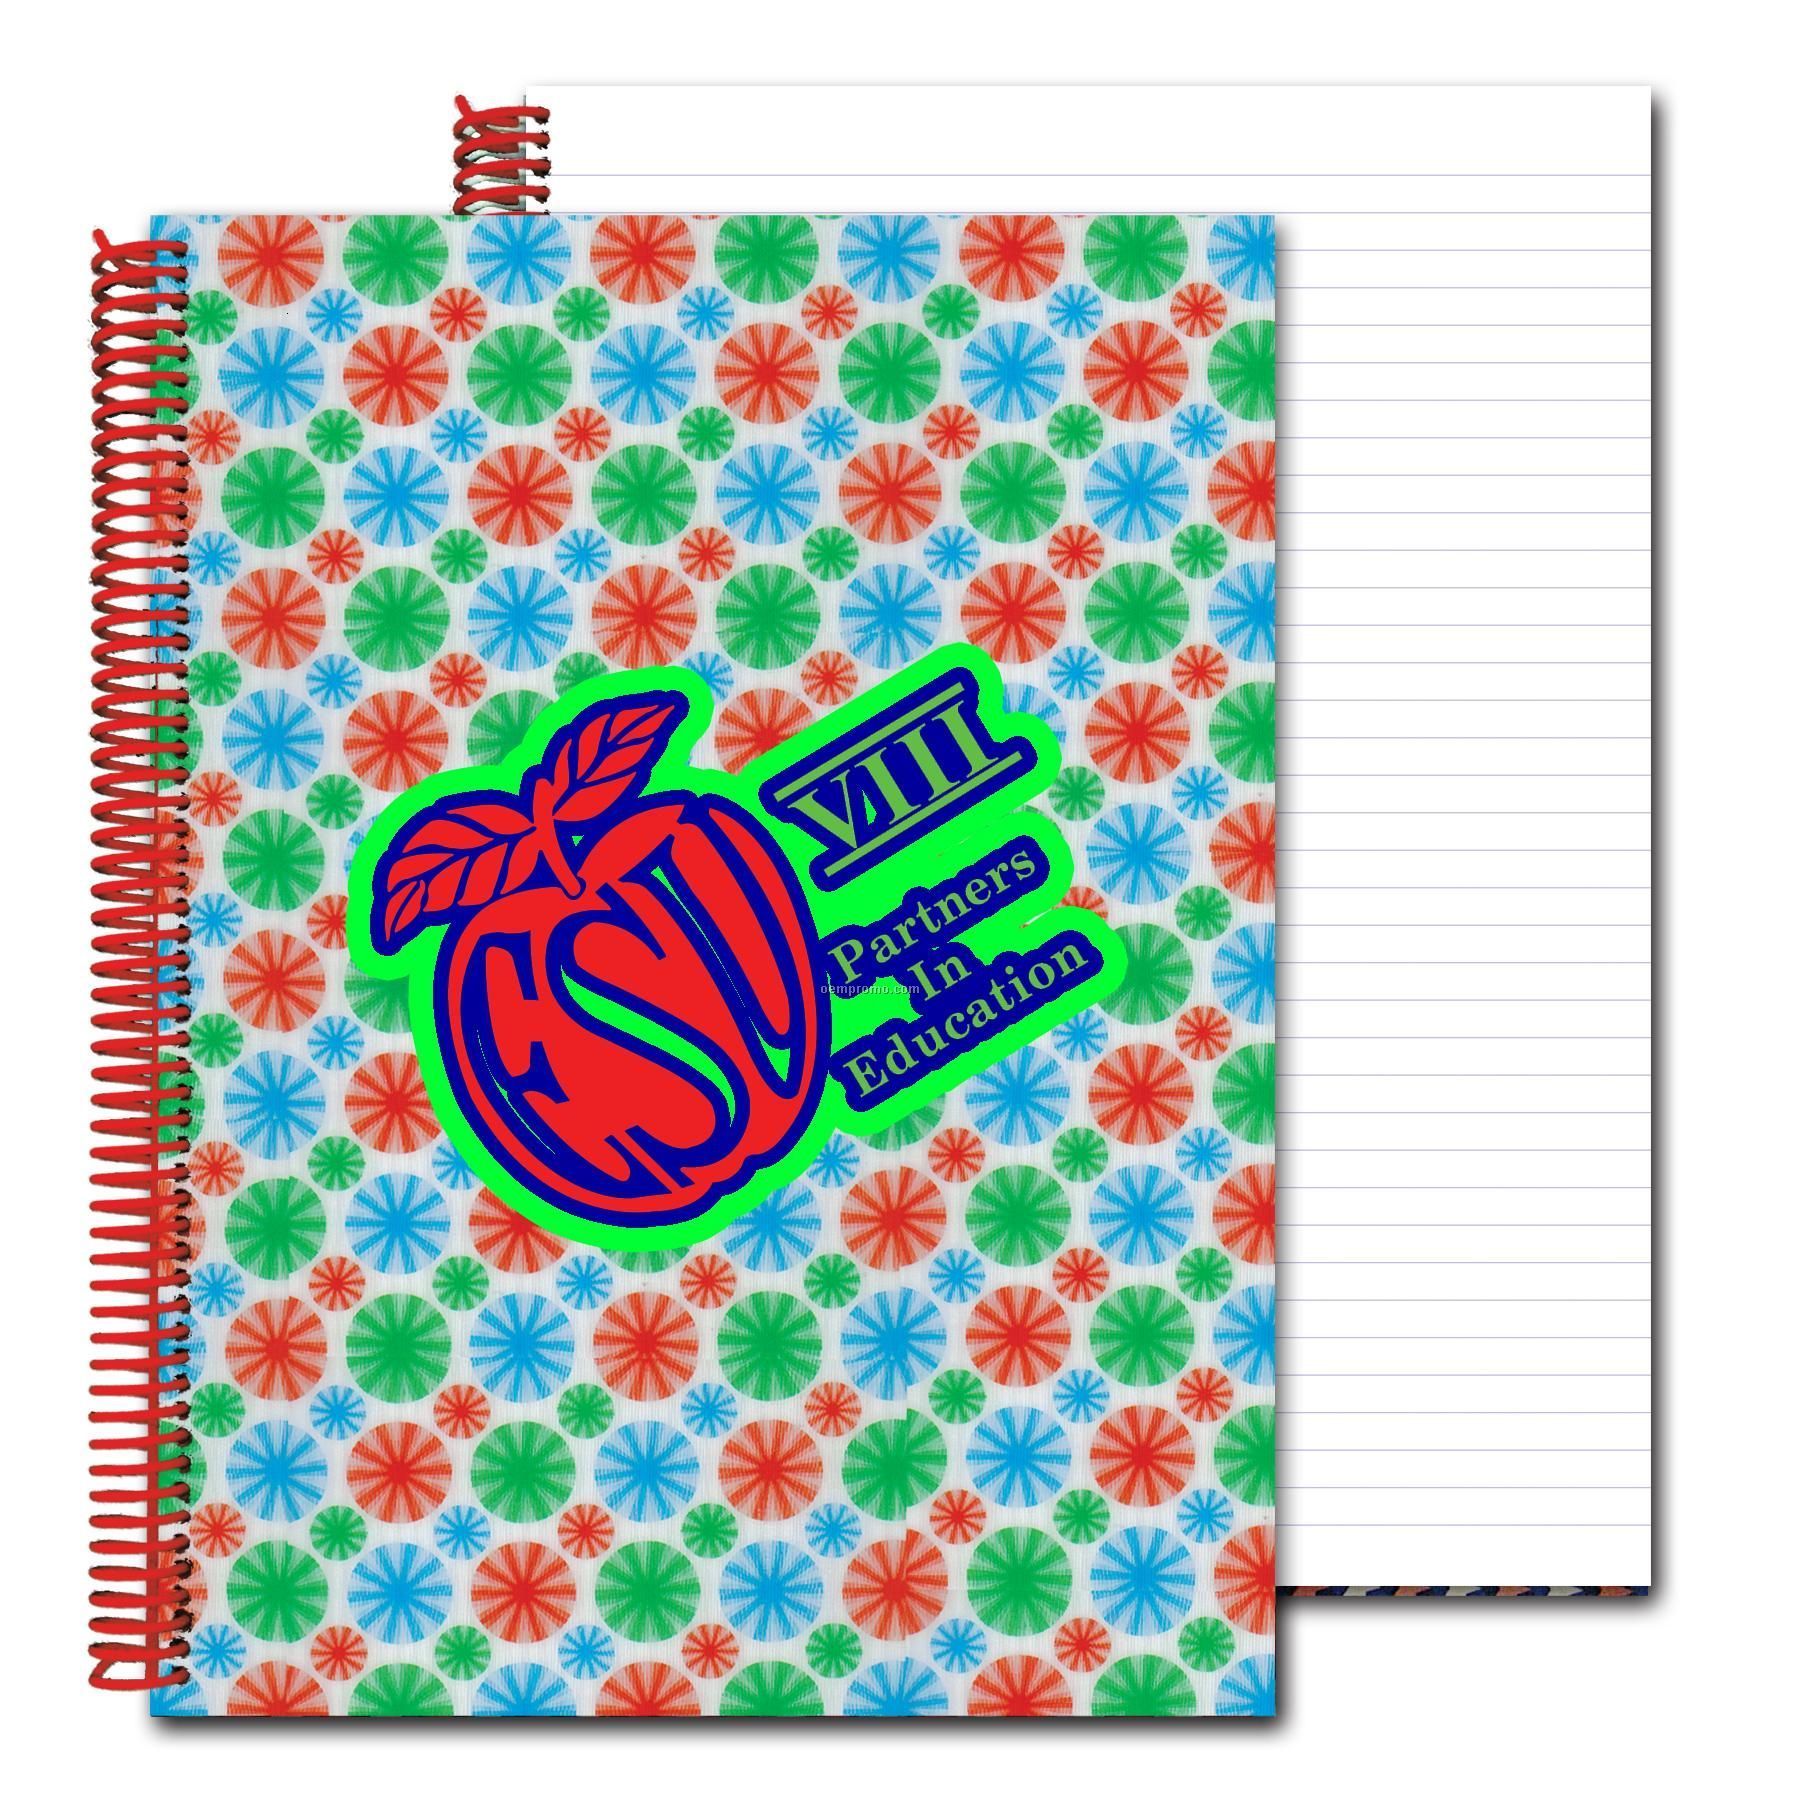 notebook with colored pages - notebooks china wholesale notebooks page 48